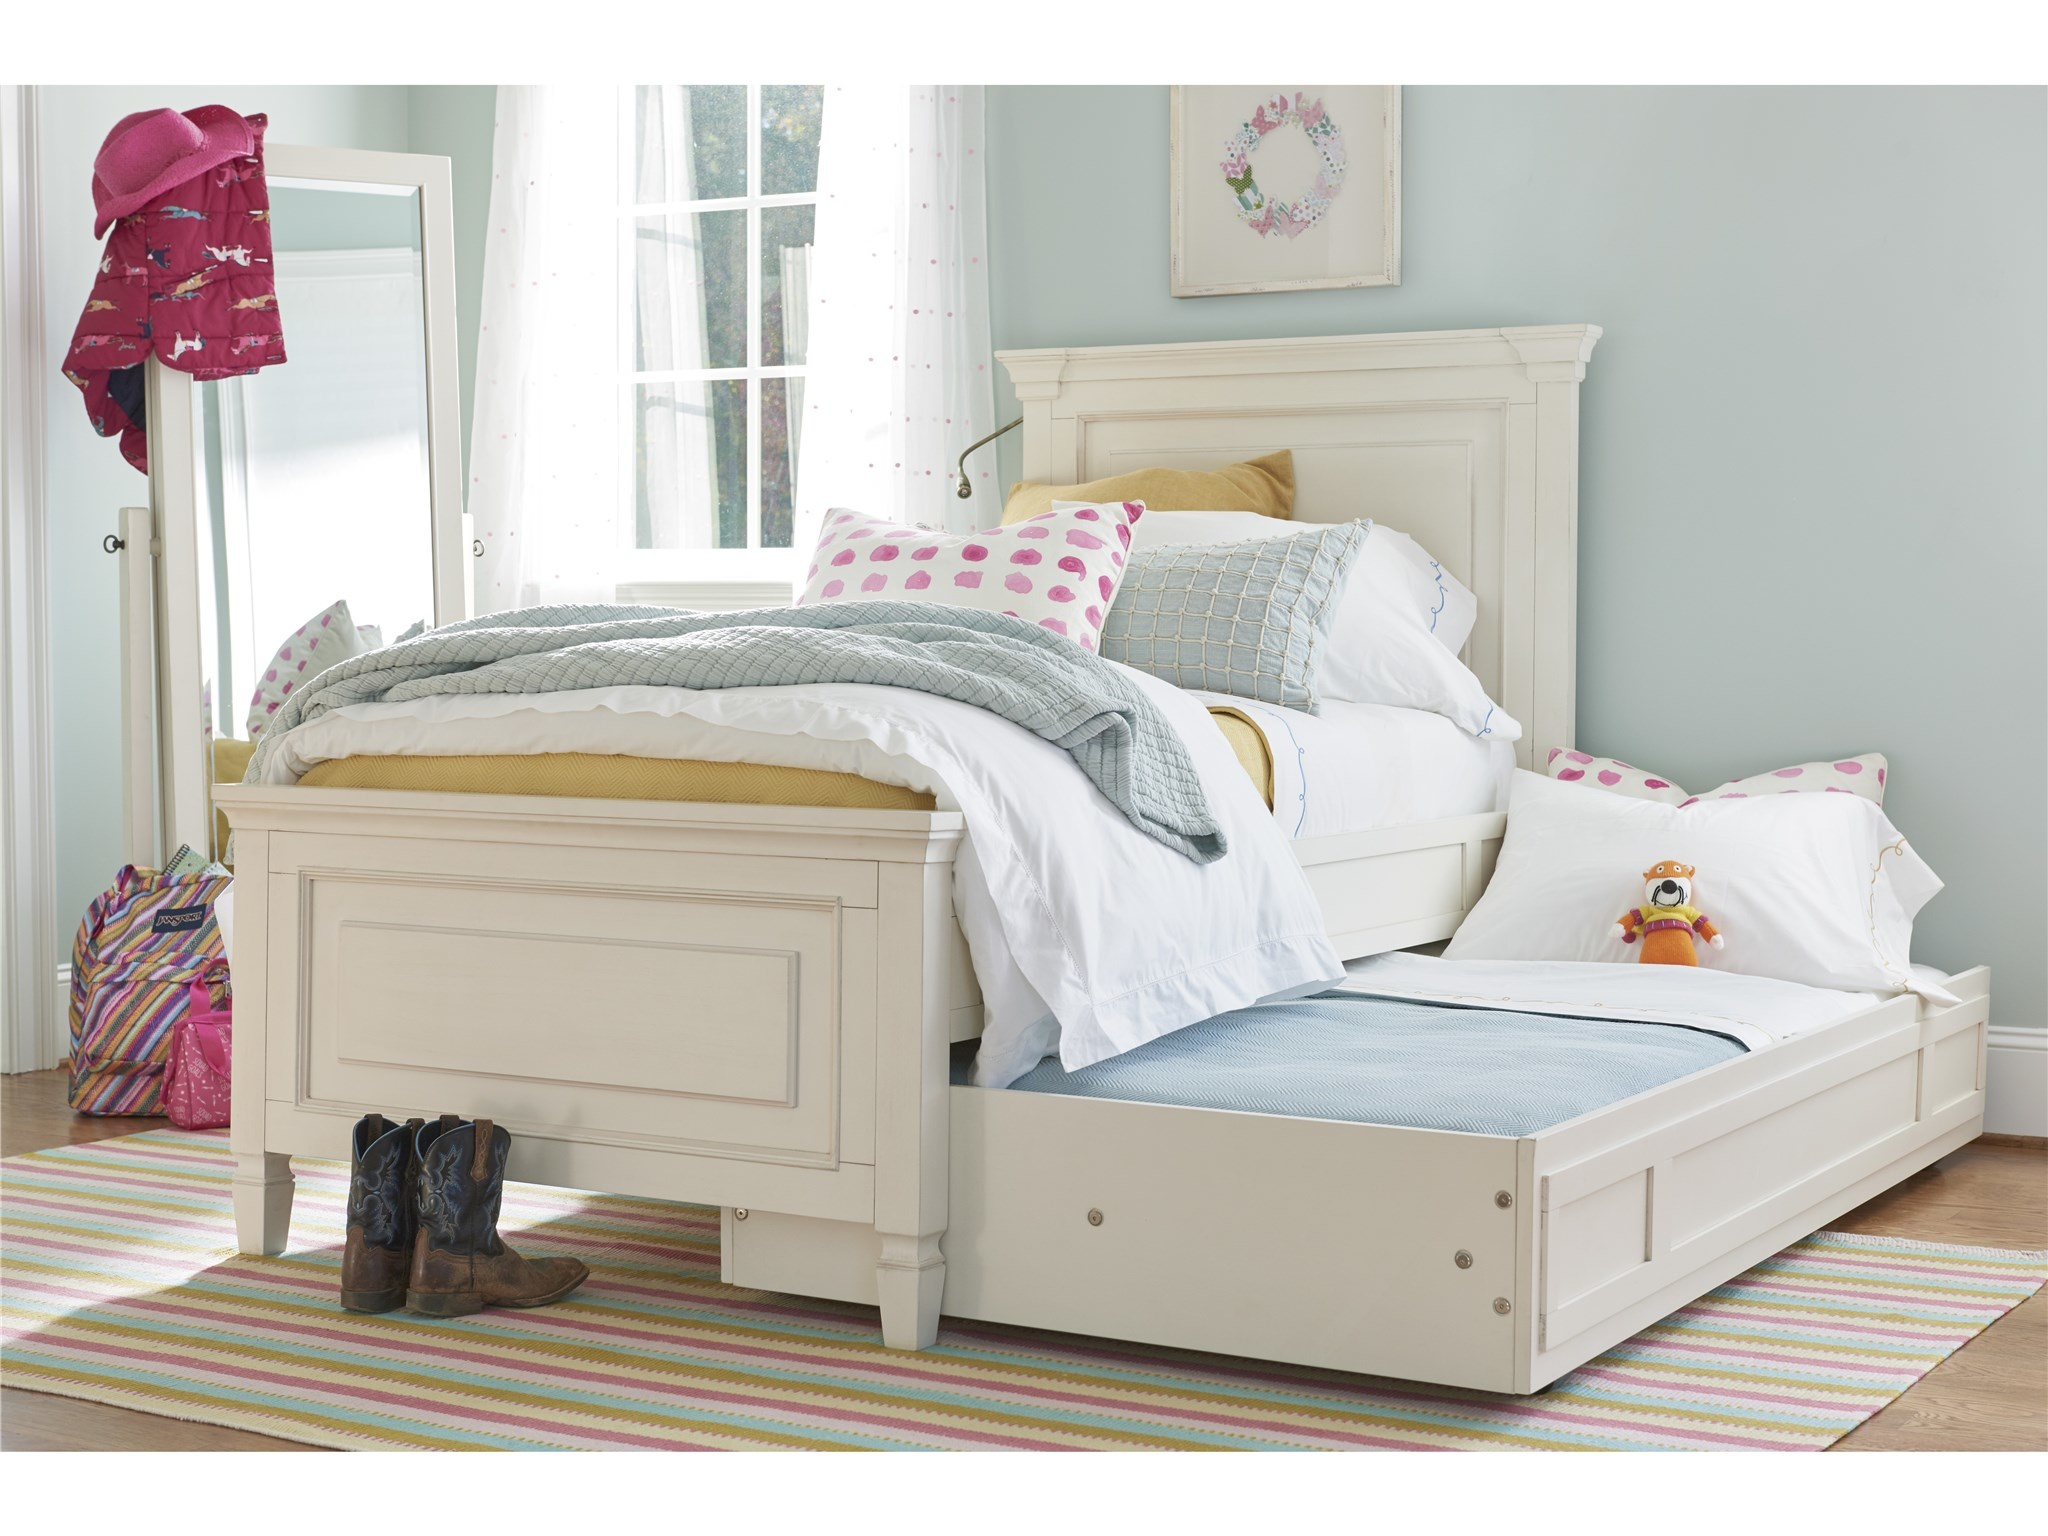 Bed Shops Reading Universal Smart Stuff Summerhill Twin Reading Bed